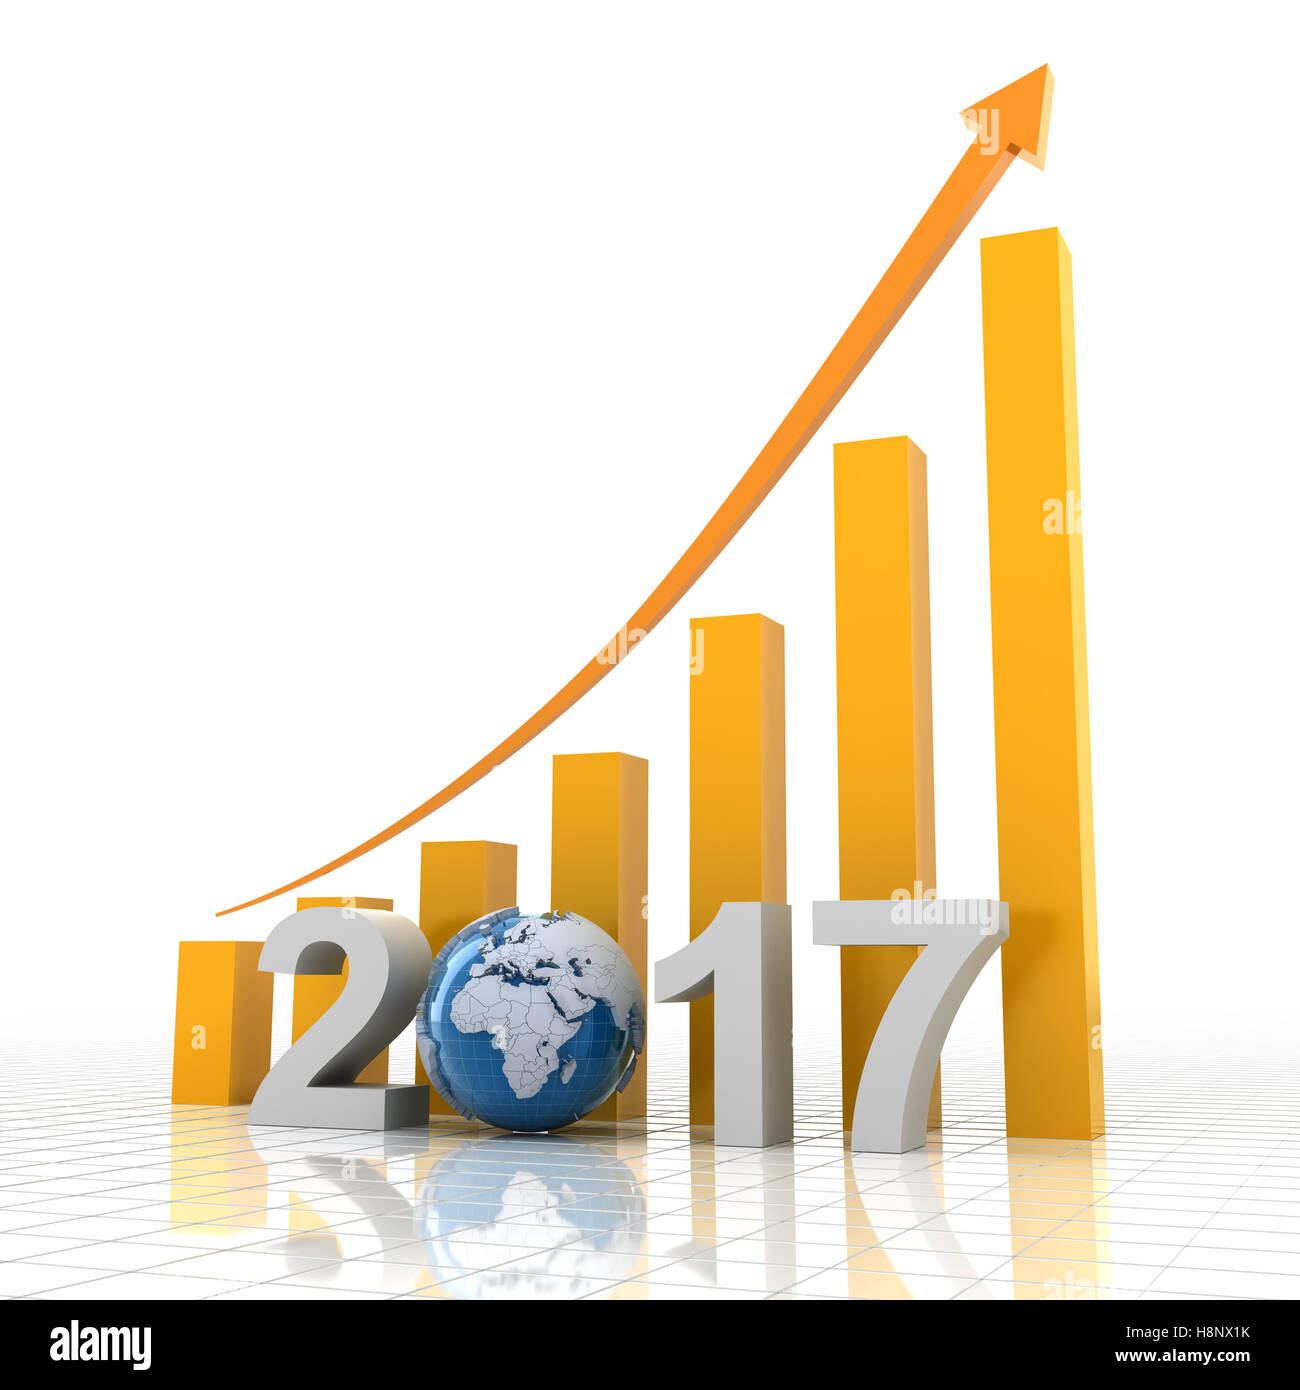 Growth chart 2017 stock photo royalty free image 125871247 alamy growth chart 2017 nvjuhfo Gallery